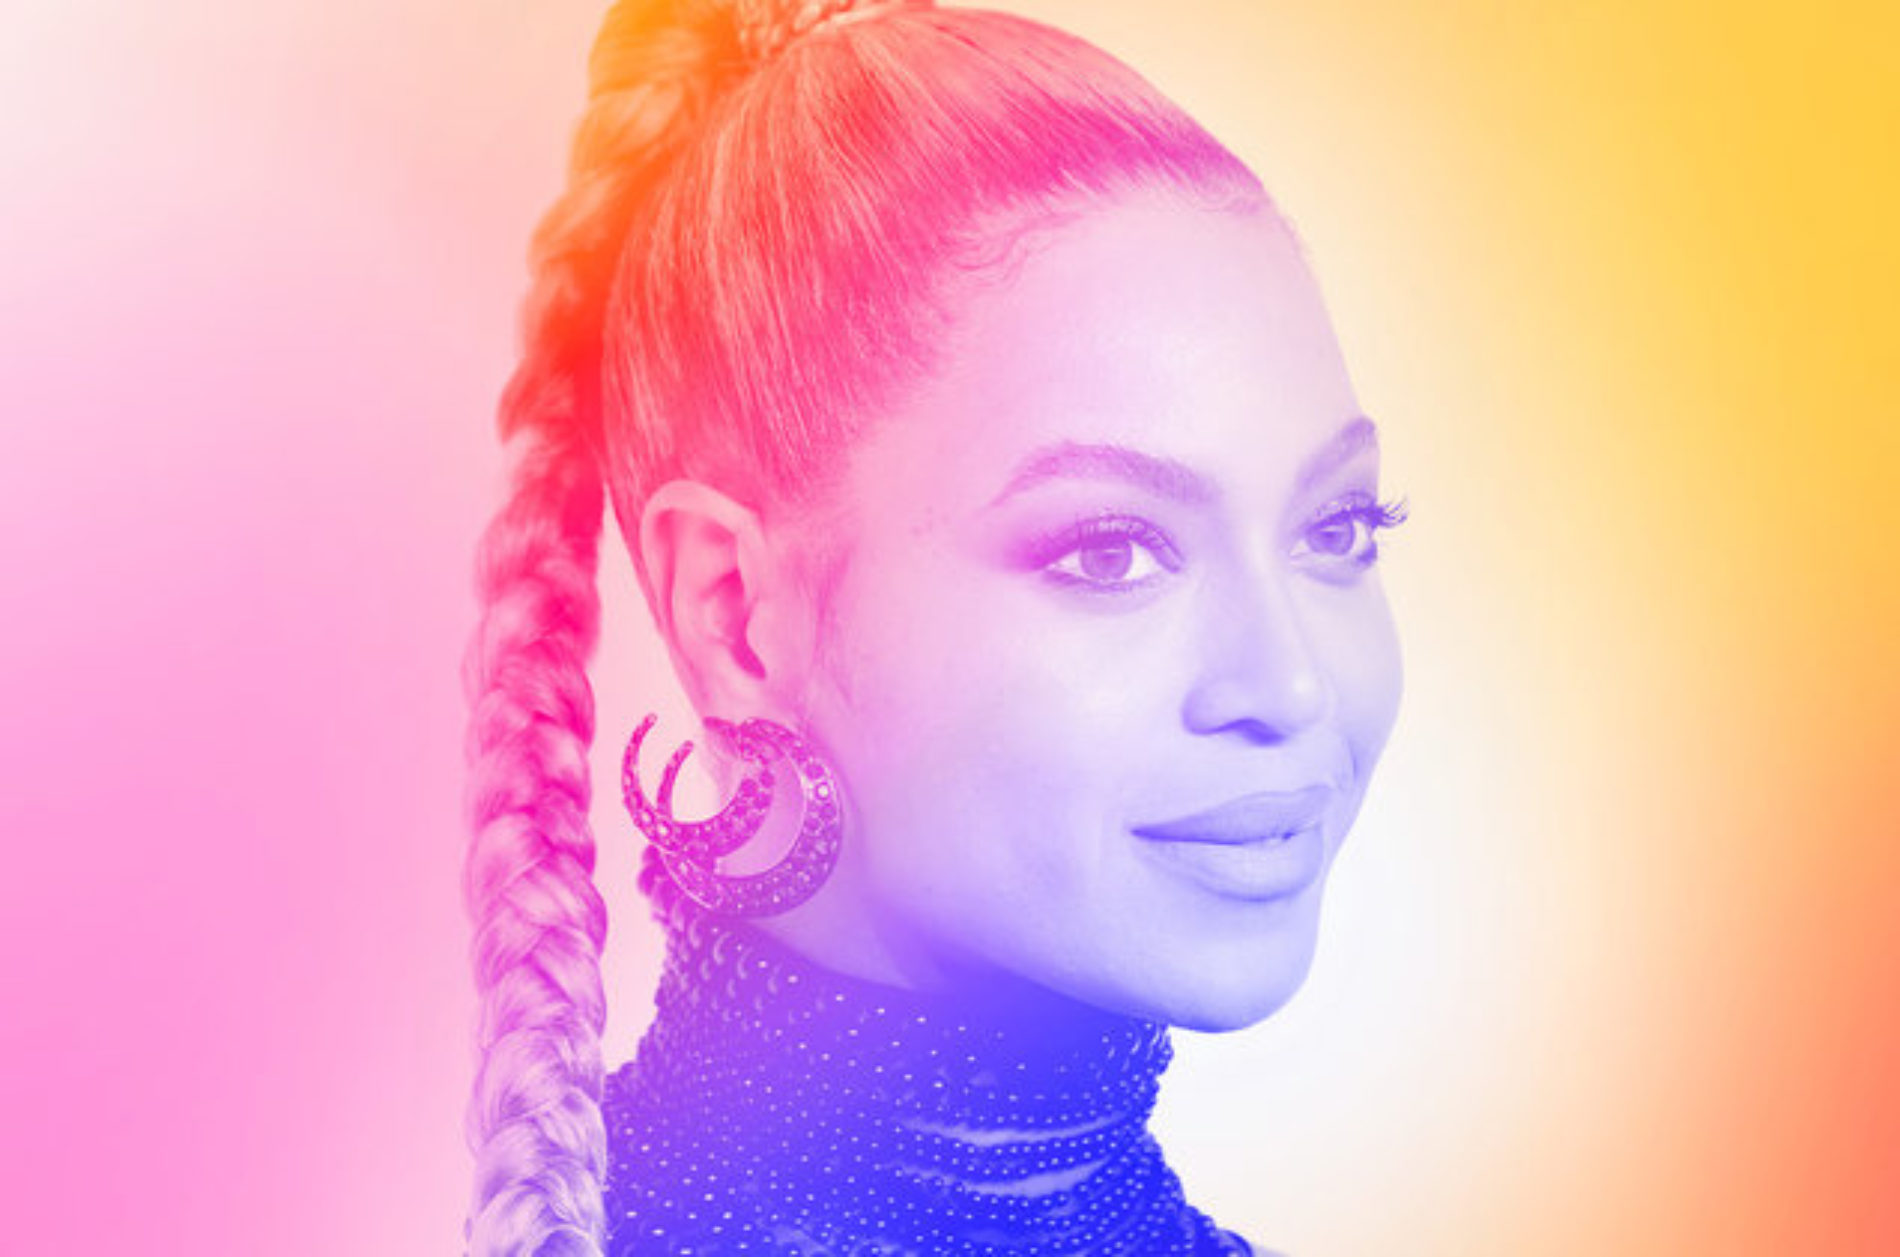 5 Times Beyoncé Showed LGBTQ Inclusively In Her Artistry